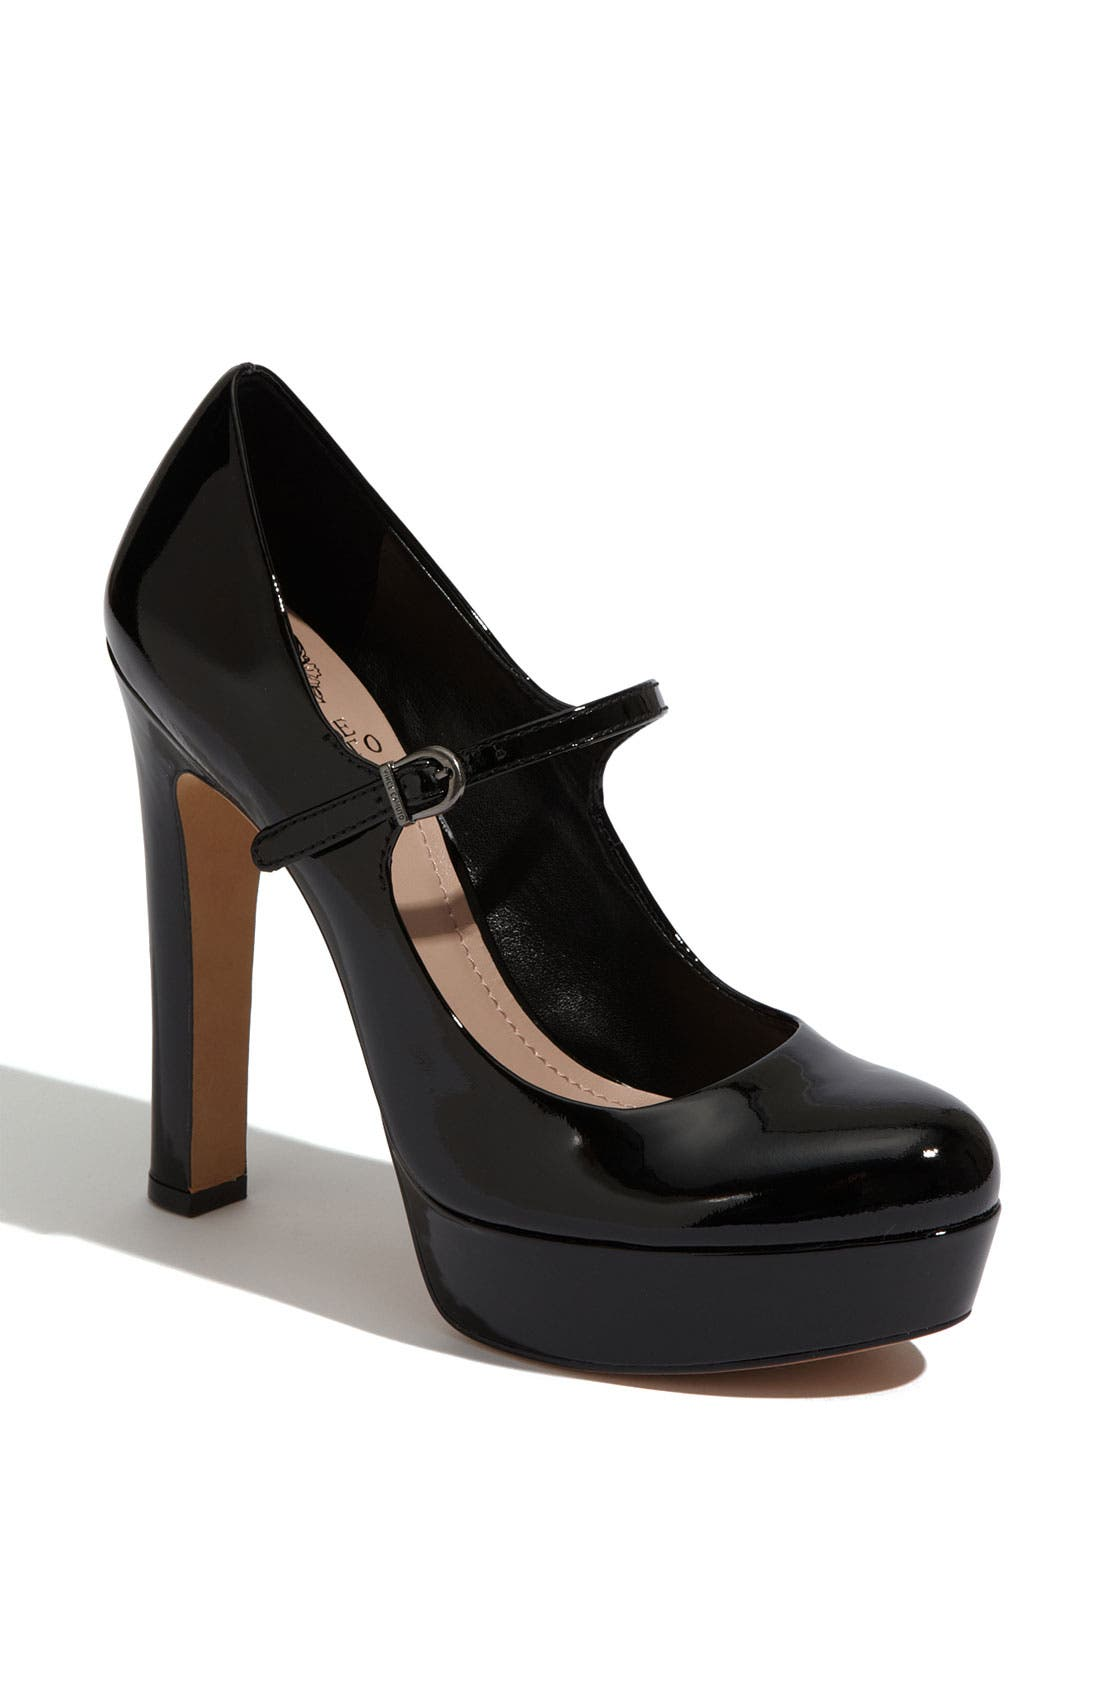 Alternate Image 1 Selected - Vince Camuto 'Jasper' Mary Jane Pump